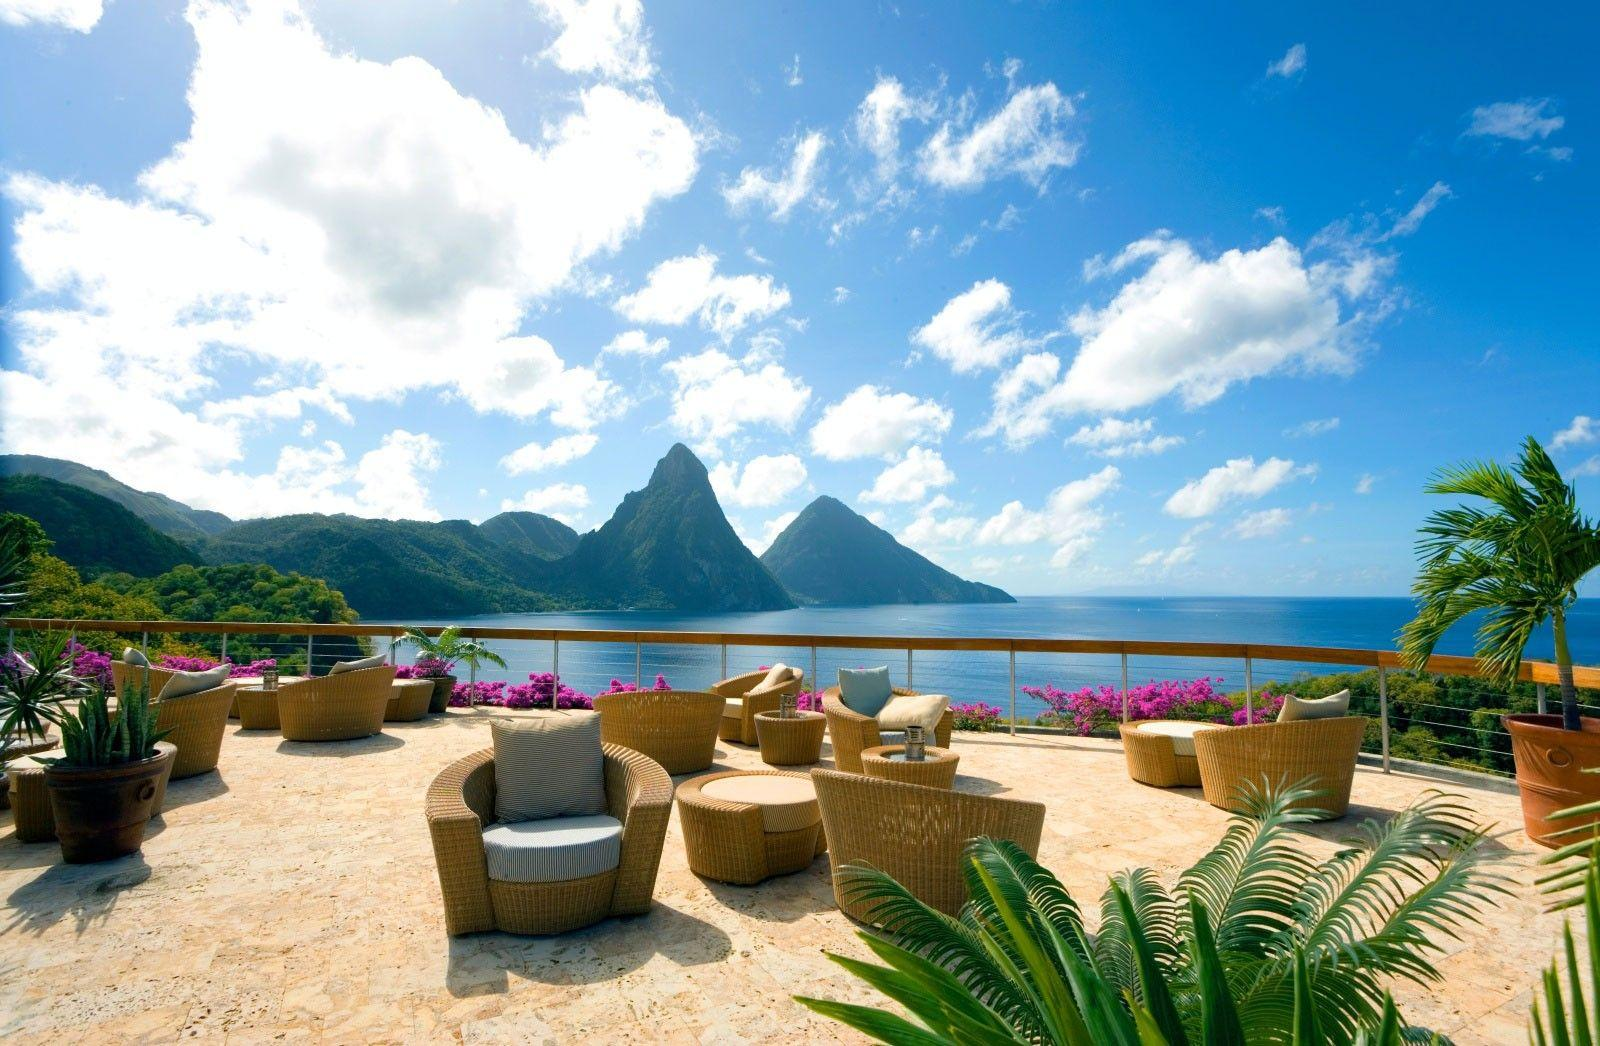 Beach: Beautiful View Blue Ocean Lagoon Mountains Caribbean St